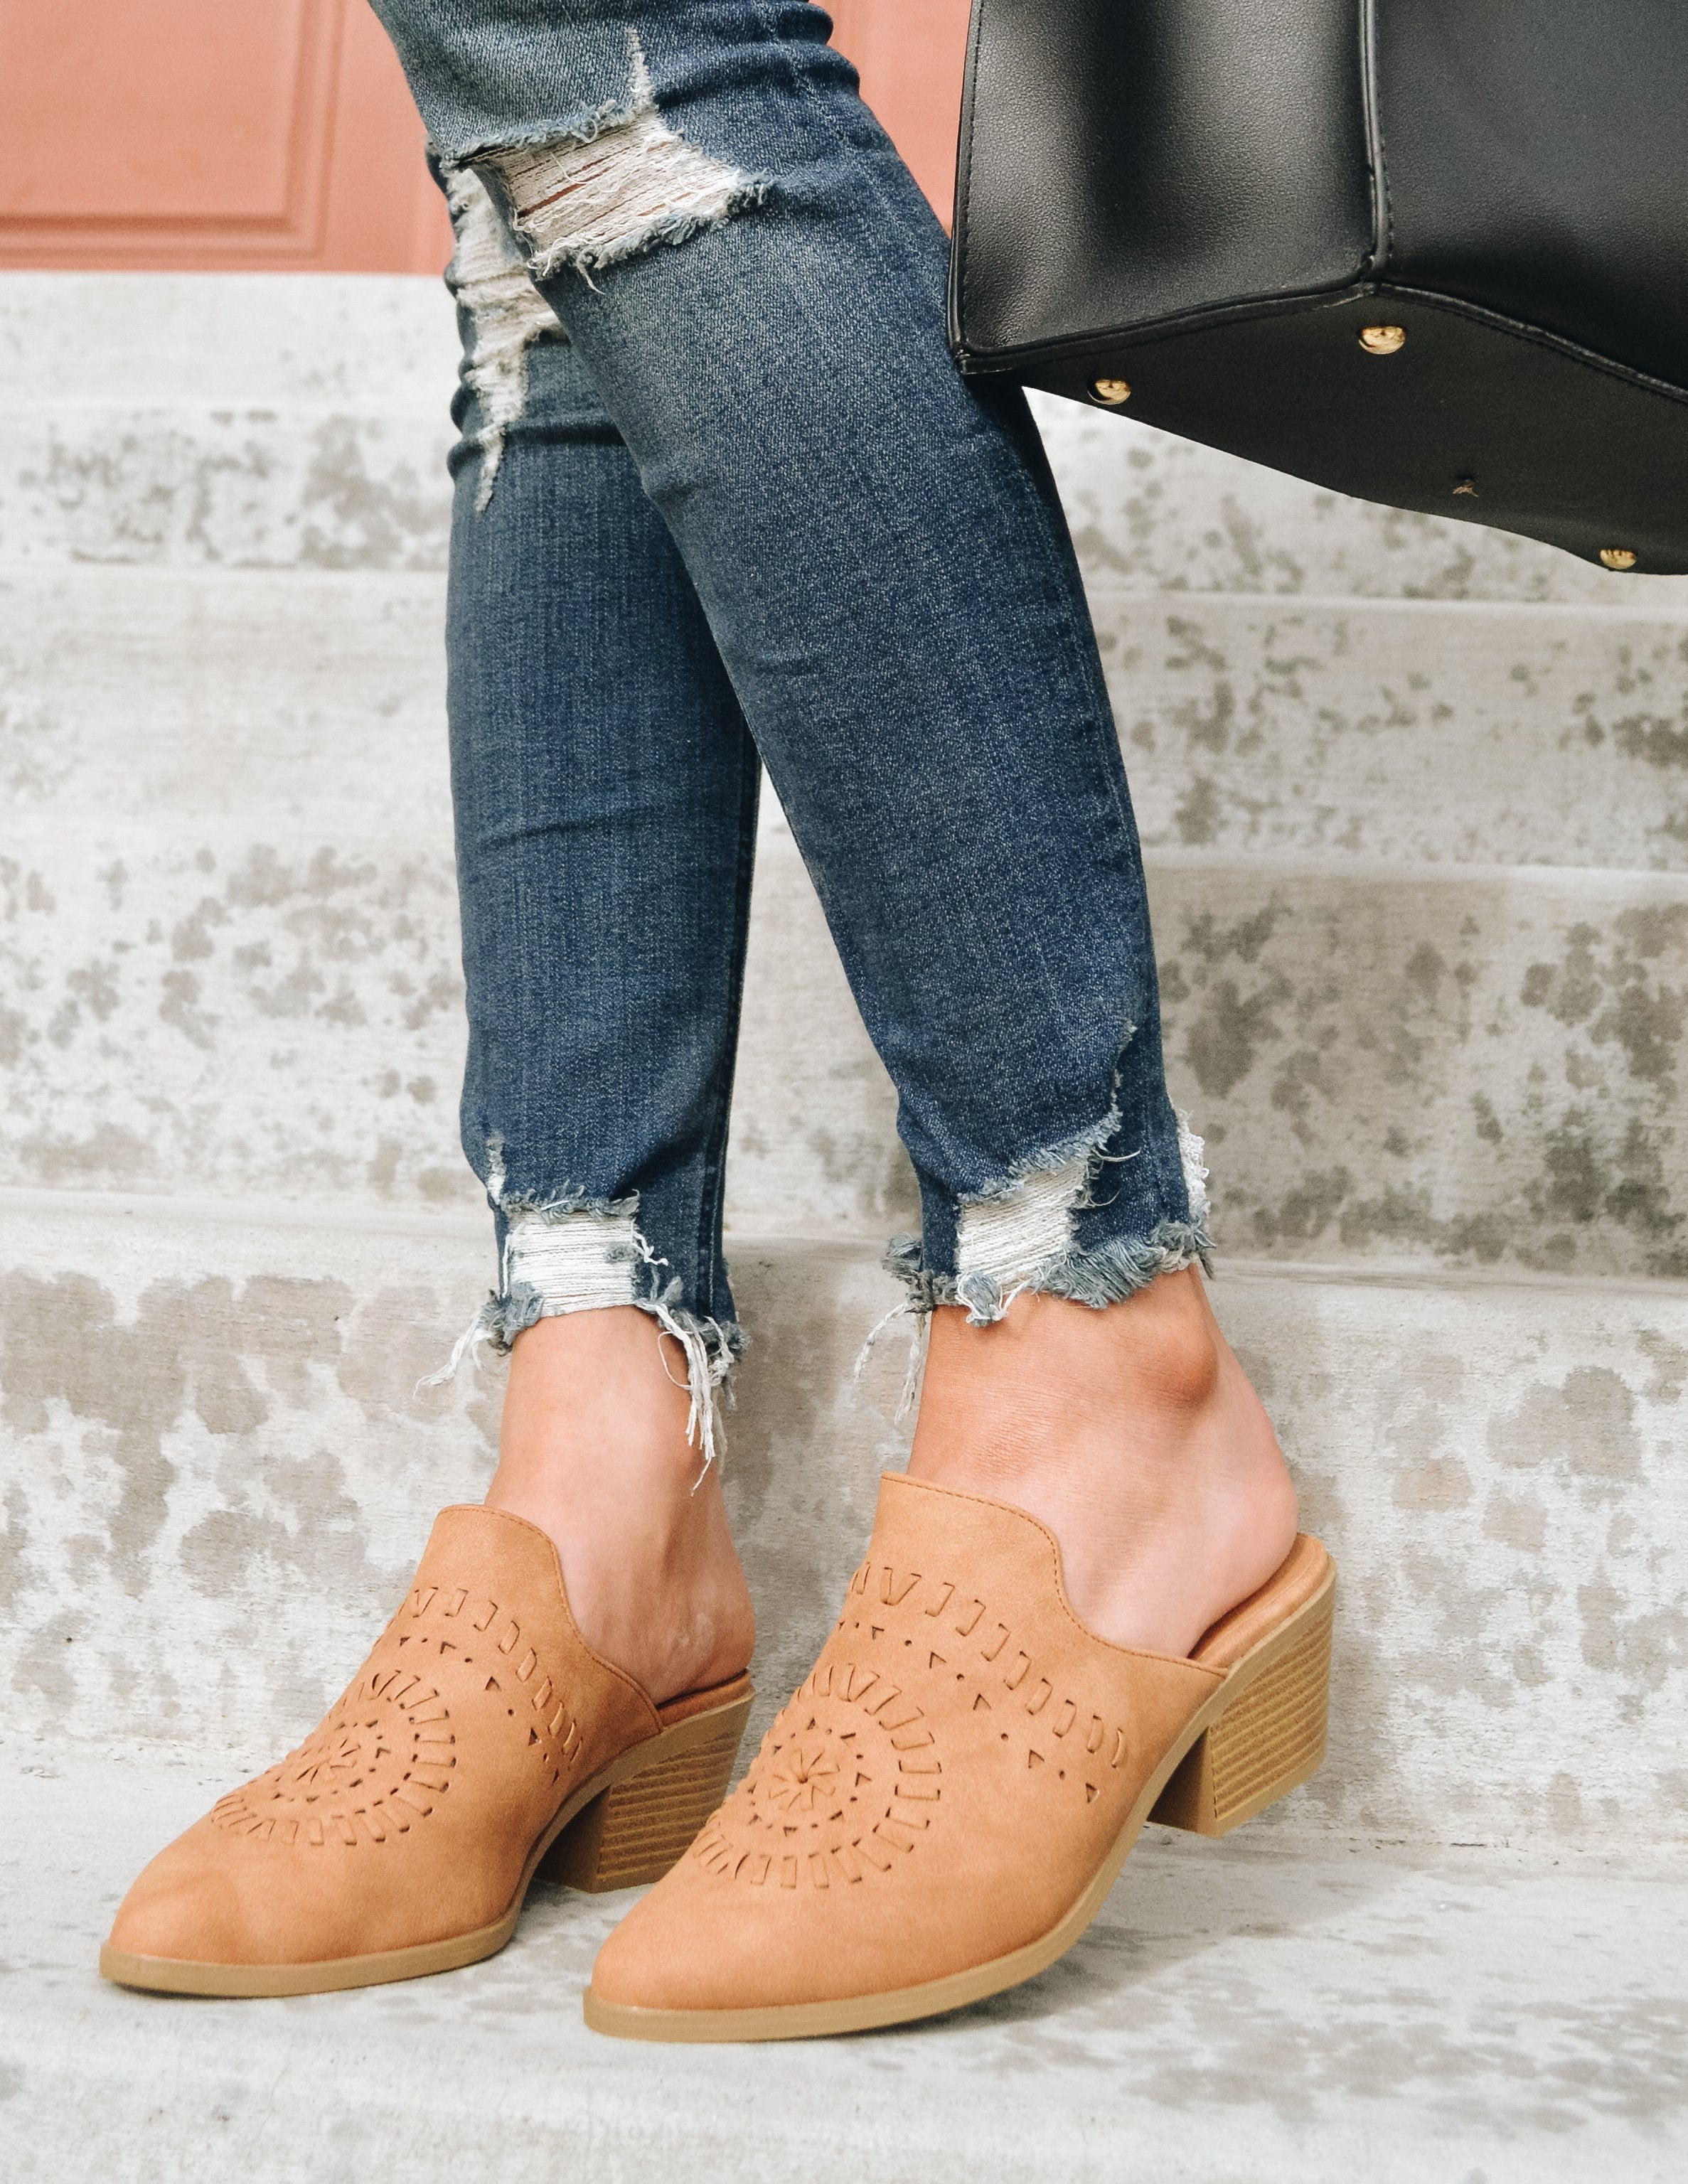 model standing on concrete steps in denim and camel mule - Elle Bleu Shoe Boutique